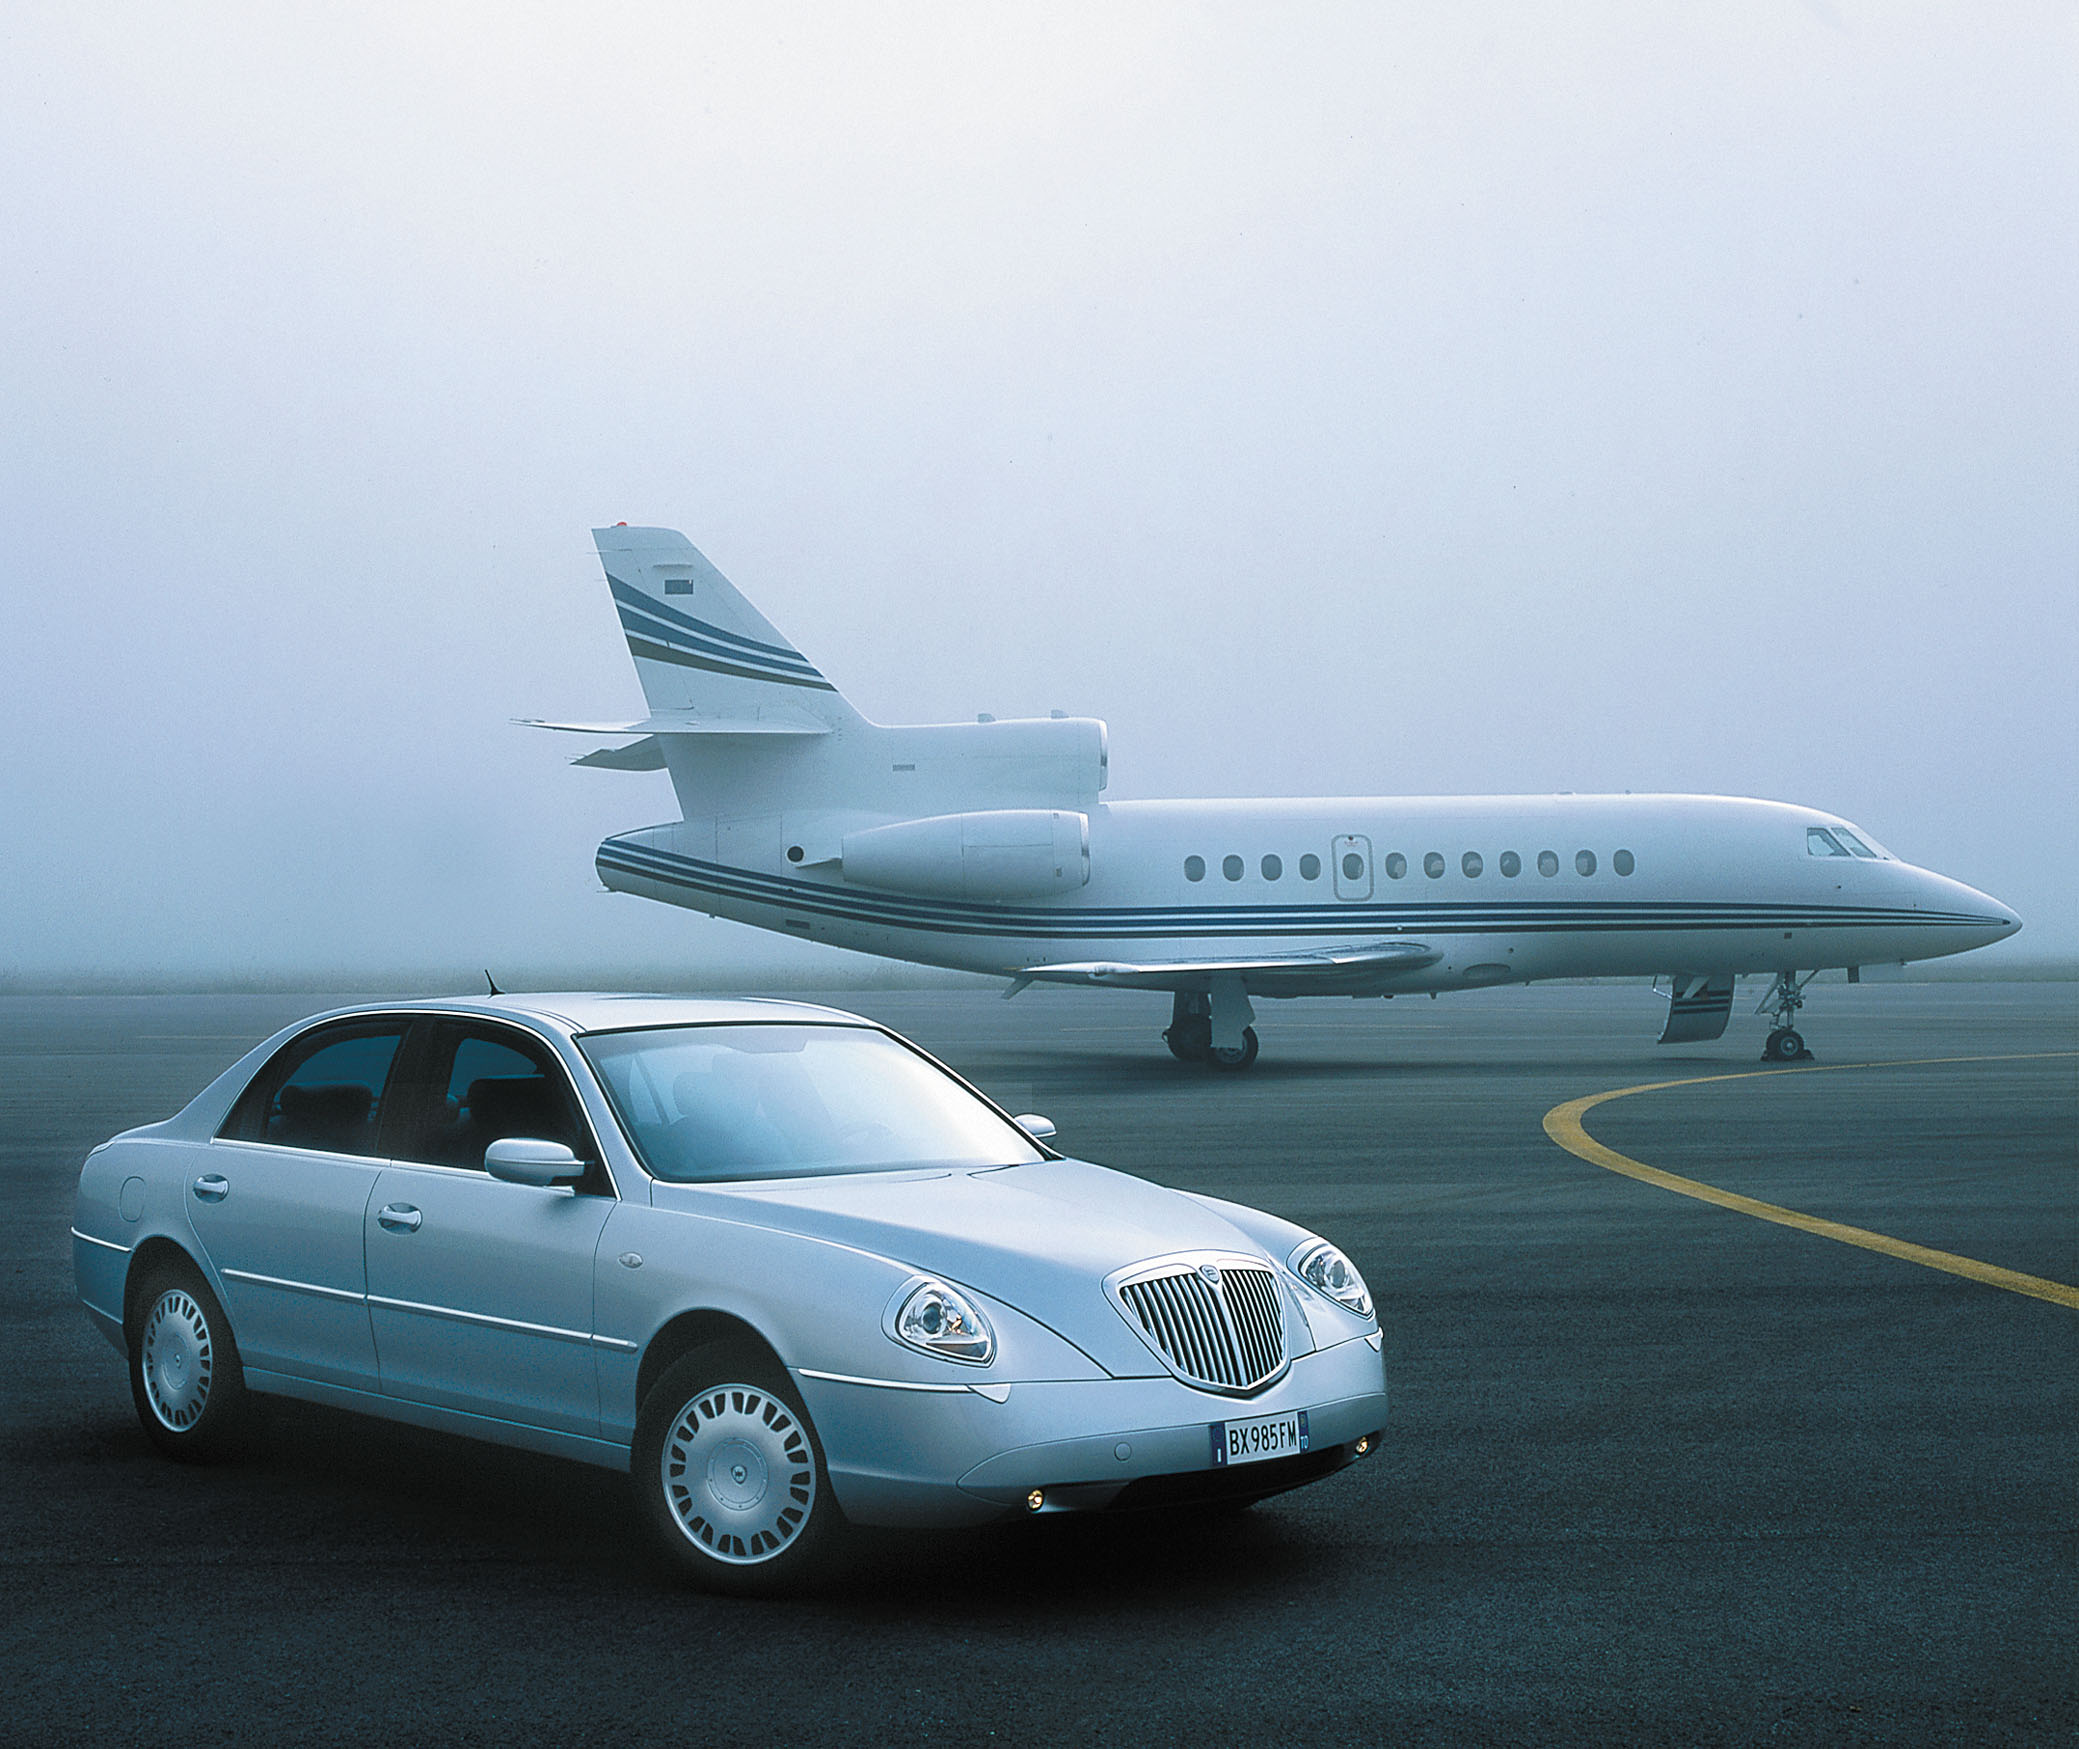 lancia thesis review 2004 2002 lancia thesis reviews: read 1 candid owner reviews for the 2002 lancia thesis get the real truth from owners like you.